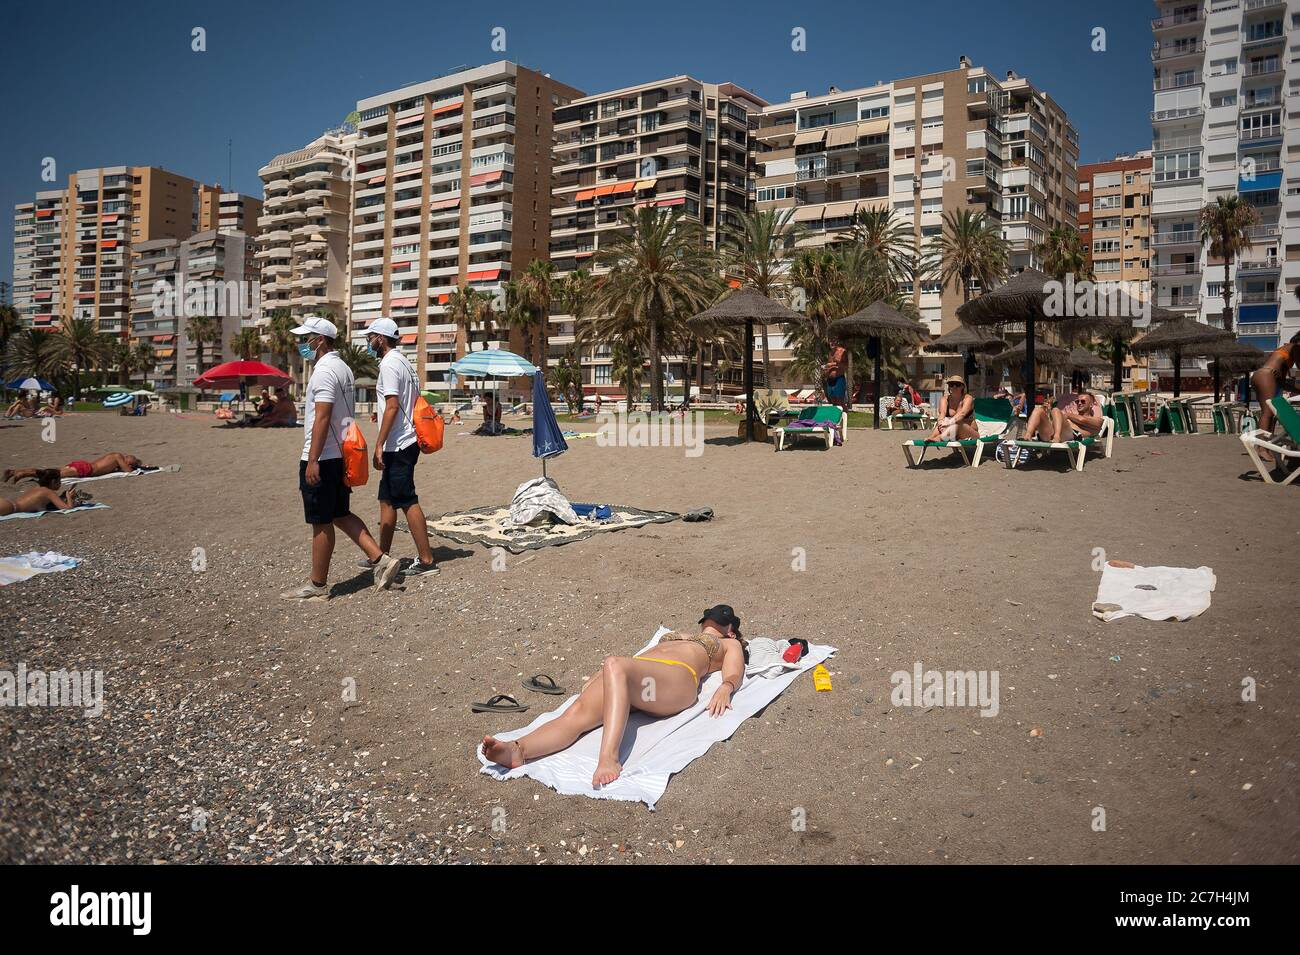 Malaga, Spain. 17th July, 2020. A group of beach assistants wearing face masks walk along the La Malagueta beach amid coronavirus crisis.The appearance of new coronavirus (COVID-19) outbreak in Spain after easing of restrictions has caused the regional government to impose the obligatory use of face masks in outdoors places even when they observe a safe distance between people. This measure tries to curb the spread of coronavirus pandemic. Credit: SOPA Images Limited/Alamy Live News Stock Photo